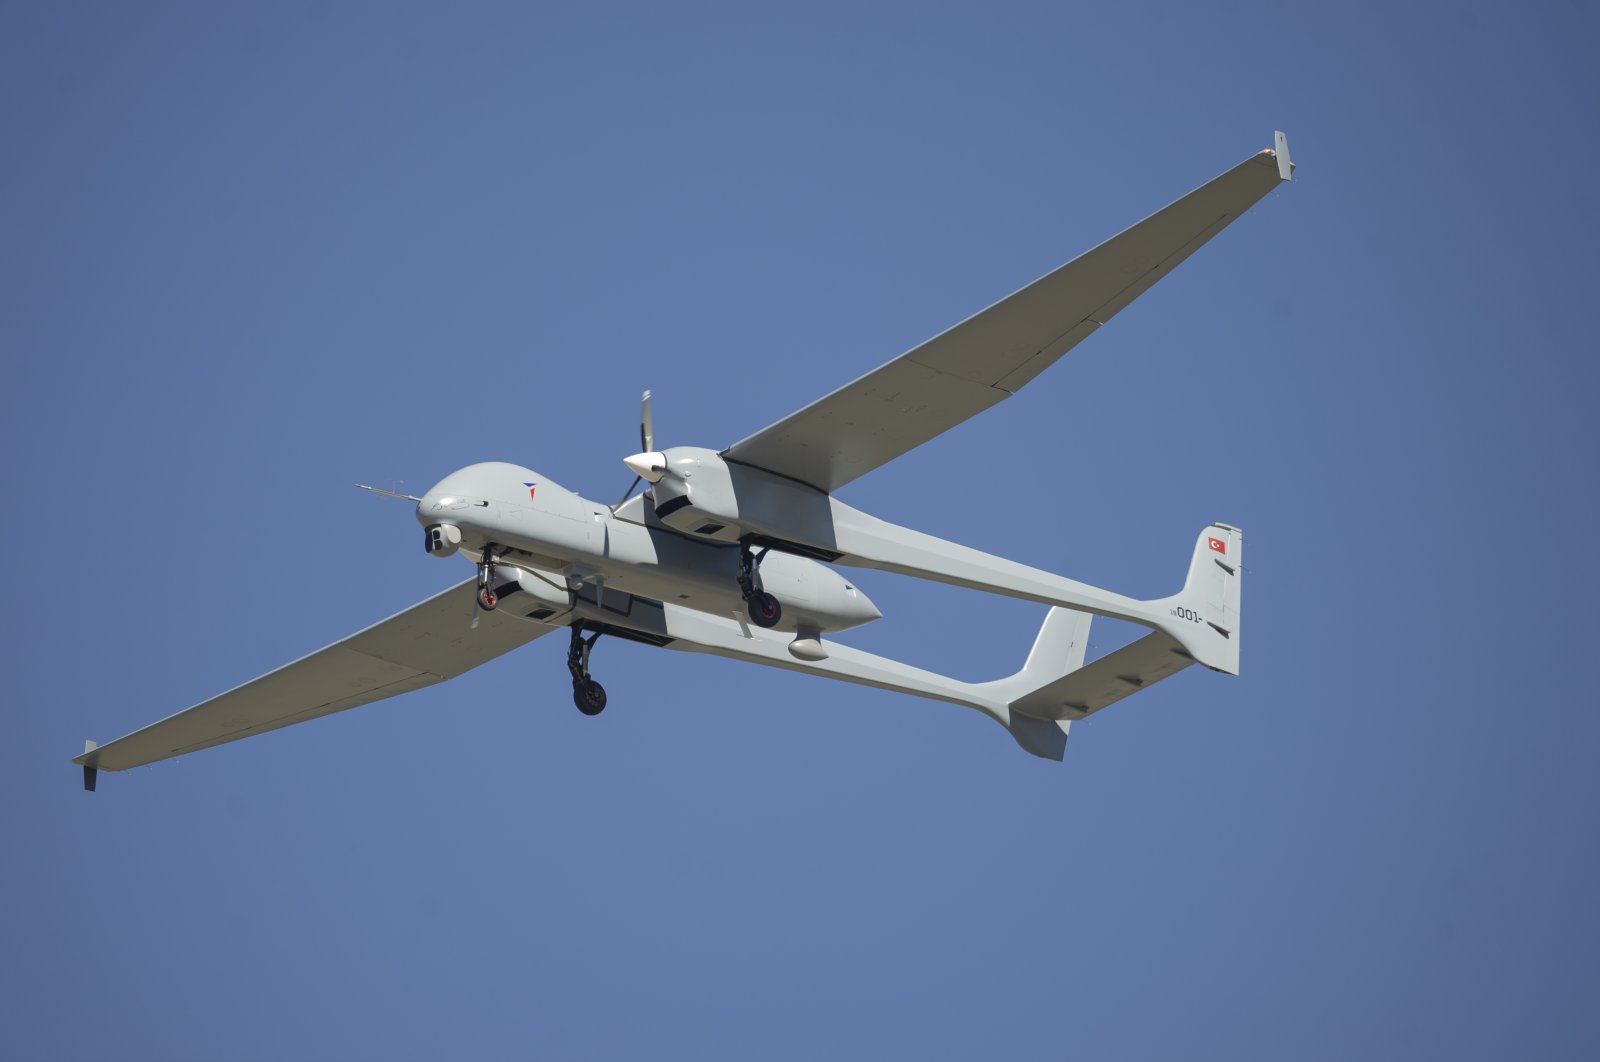 The Aksungur UAV seen in the air in this photo provided on Aug. 7, 2021. (Courtesy of TAI)